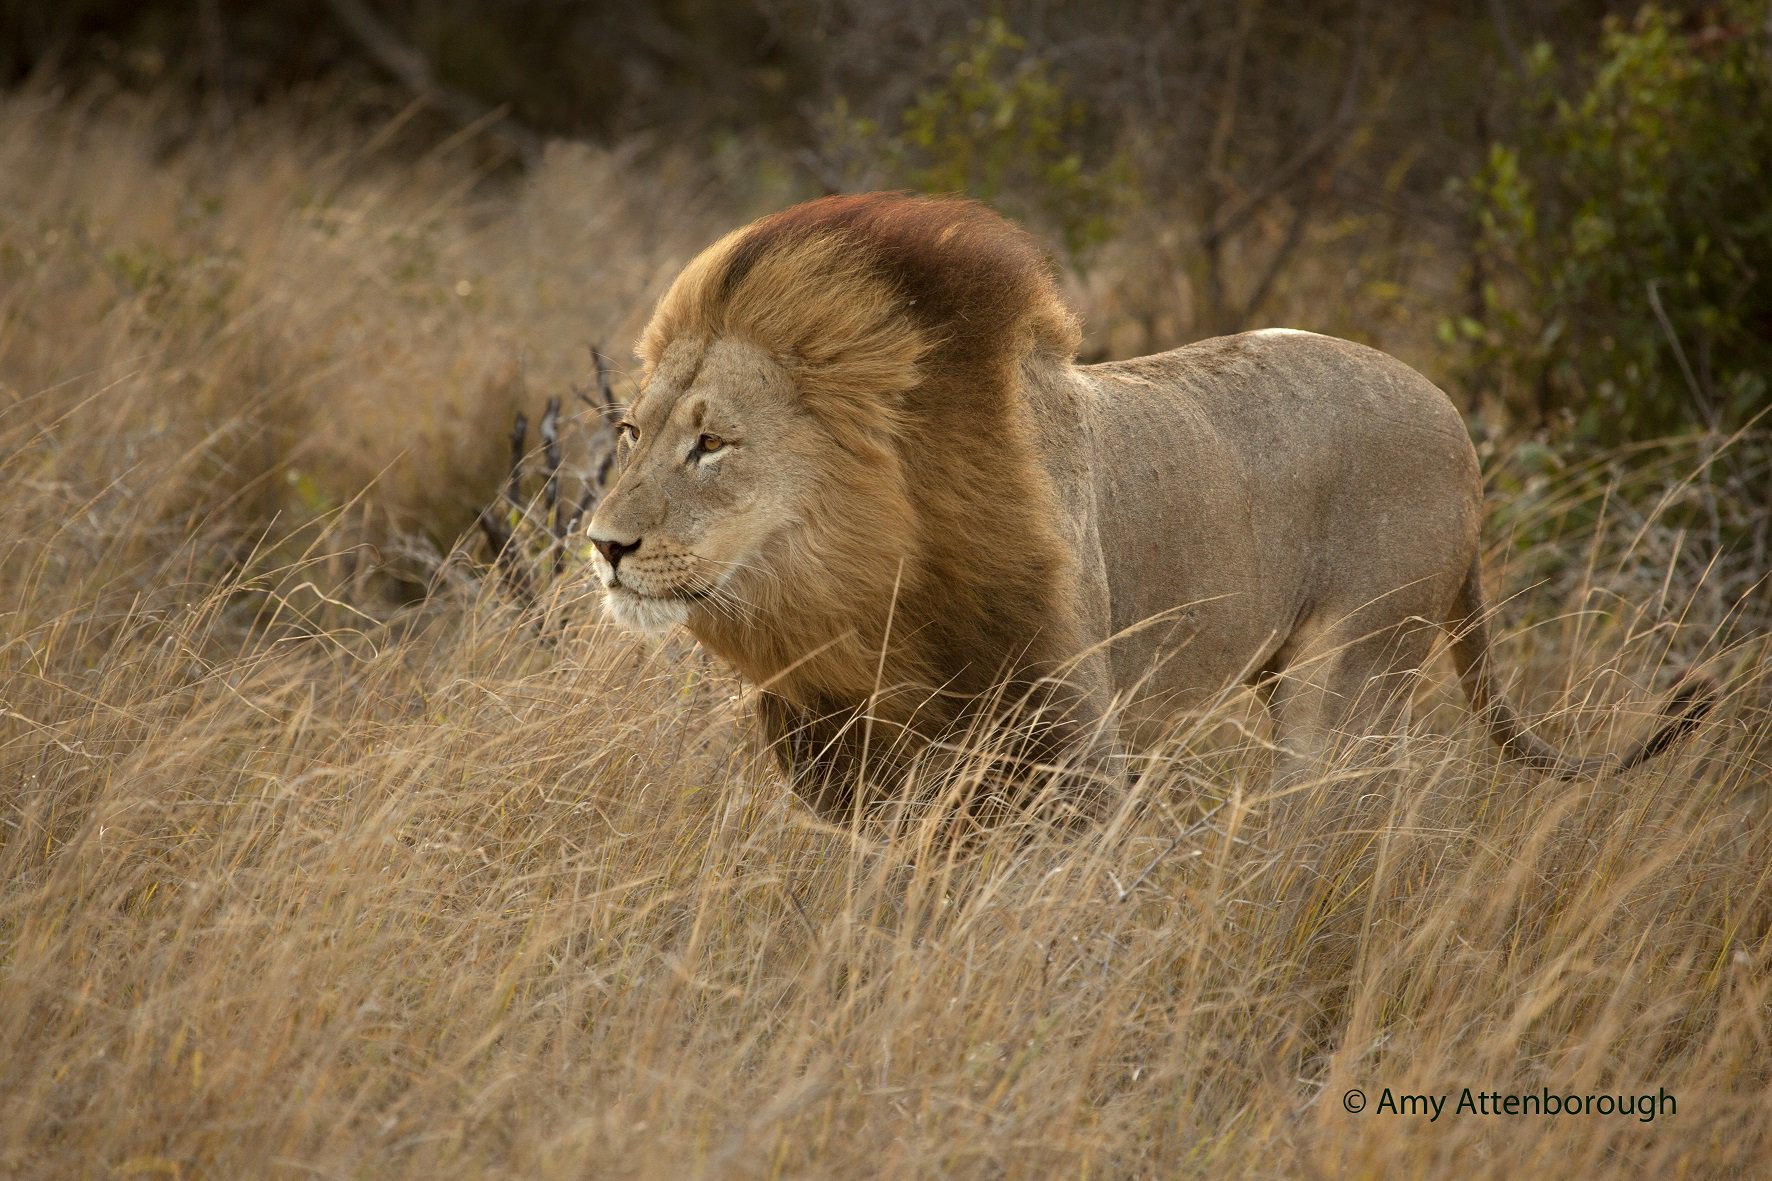 It only takes one #encounter with a lion to foster an ever lasting #respect for the king. Photo: @AmyAttenboroug1 https://t.co/9yq2N5aFNI